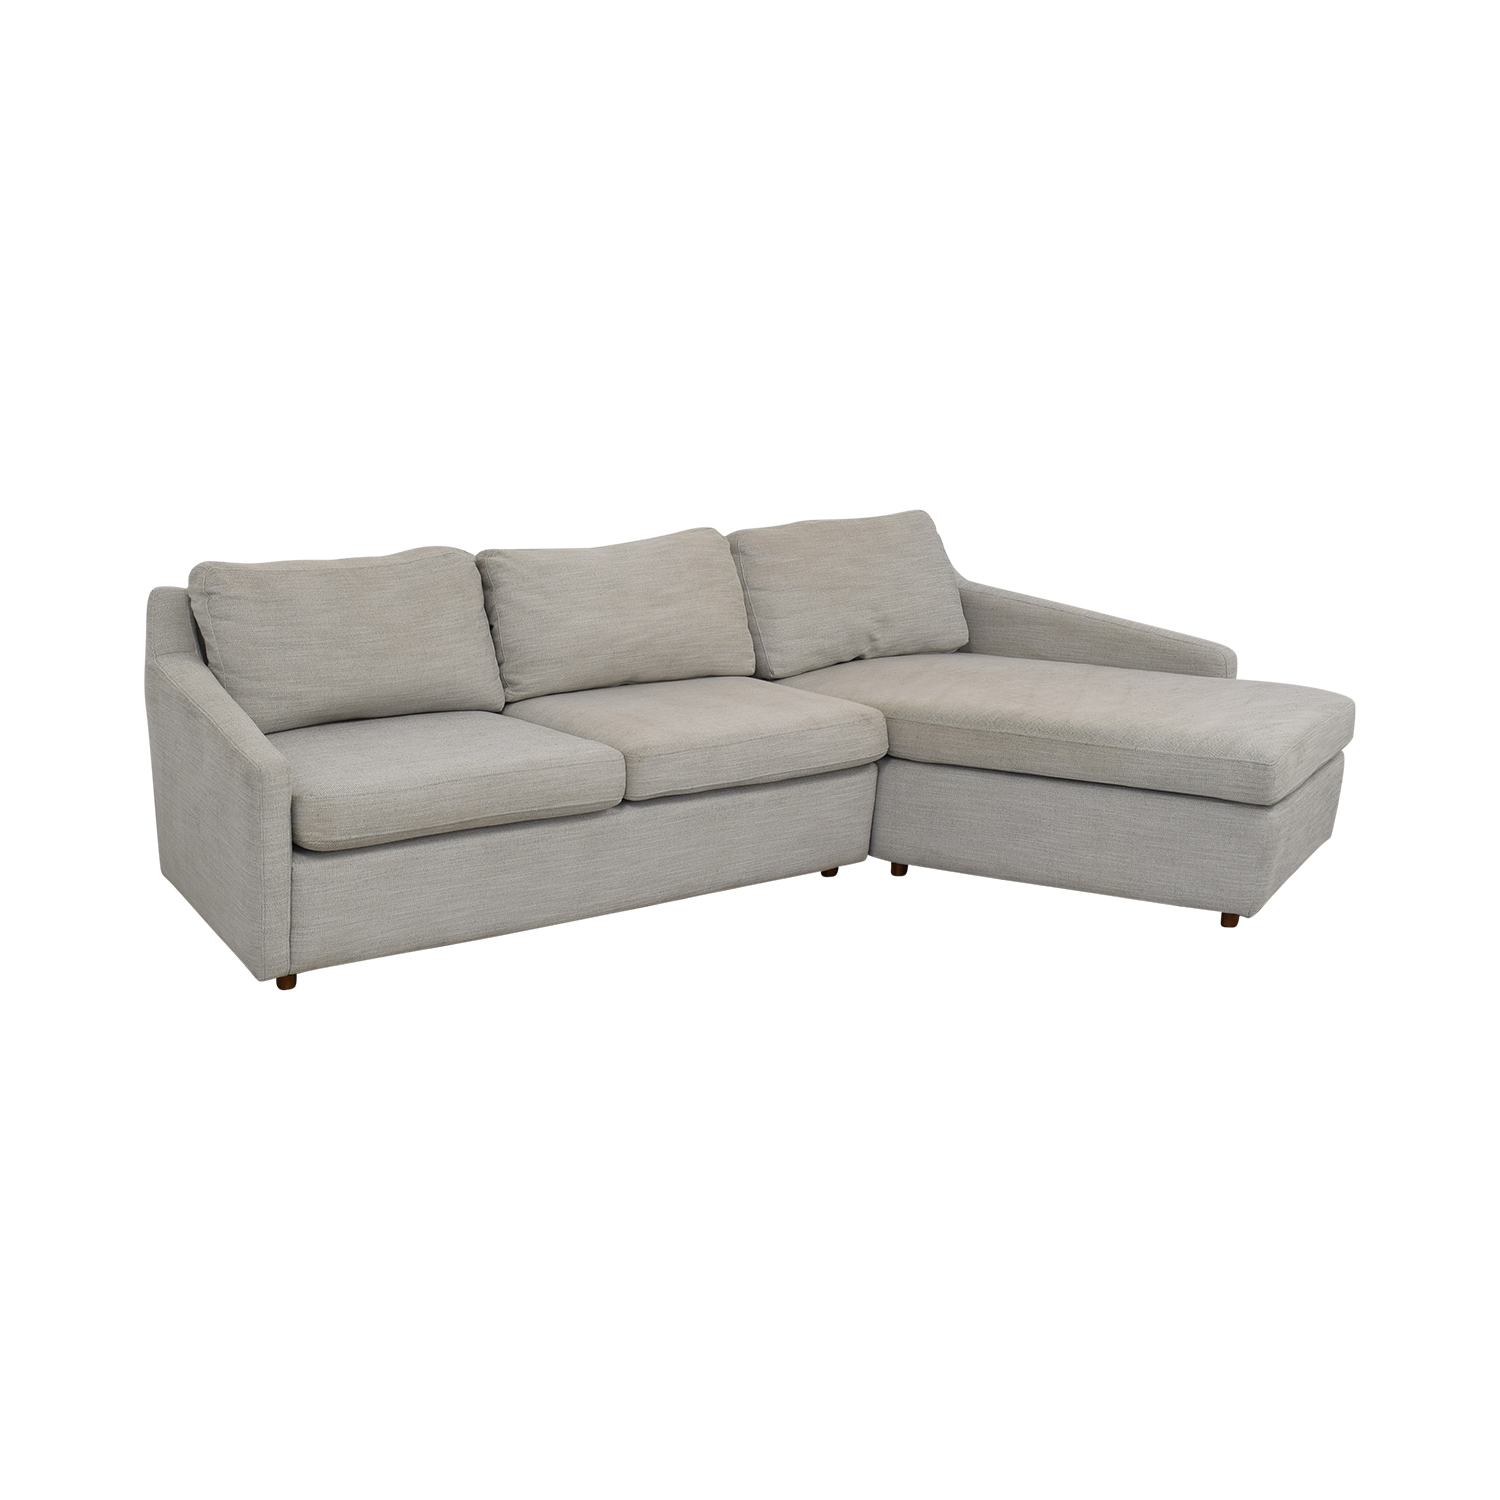 West Elm West Elm Trapez Chaise Sectional Sofa nj